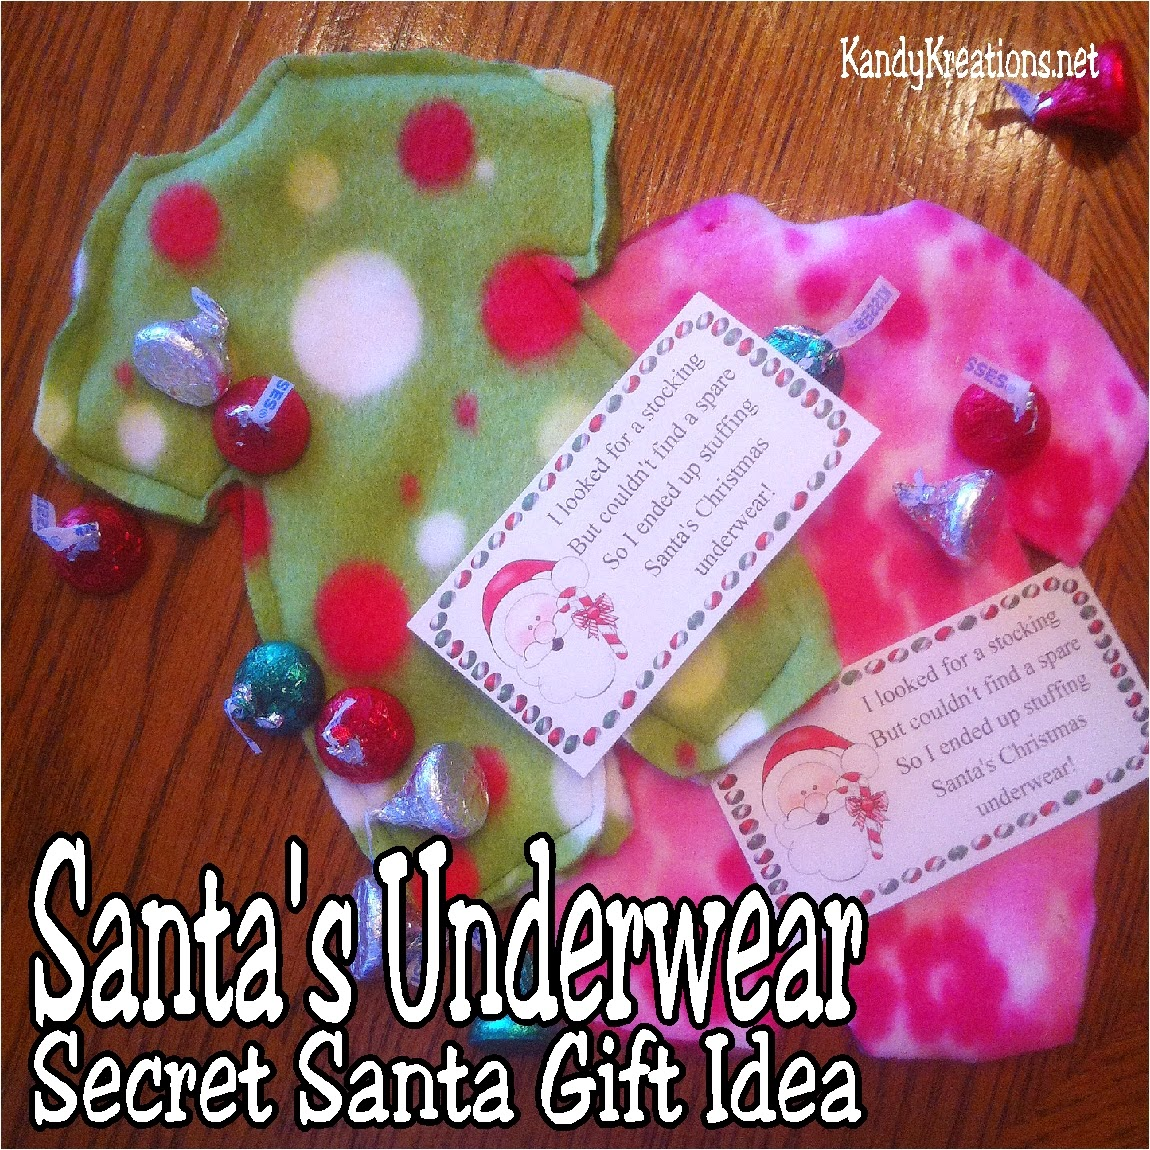 Give your secret Santa a sweet gift this Christmas using this Santa's underwear gift idea.  Use the directions to make your own underwear and the printable to add a fun tag to bring your gift together.  Your Secret Santa will be thrilled with getting underwear for sure!